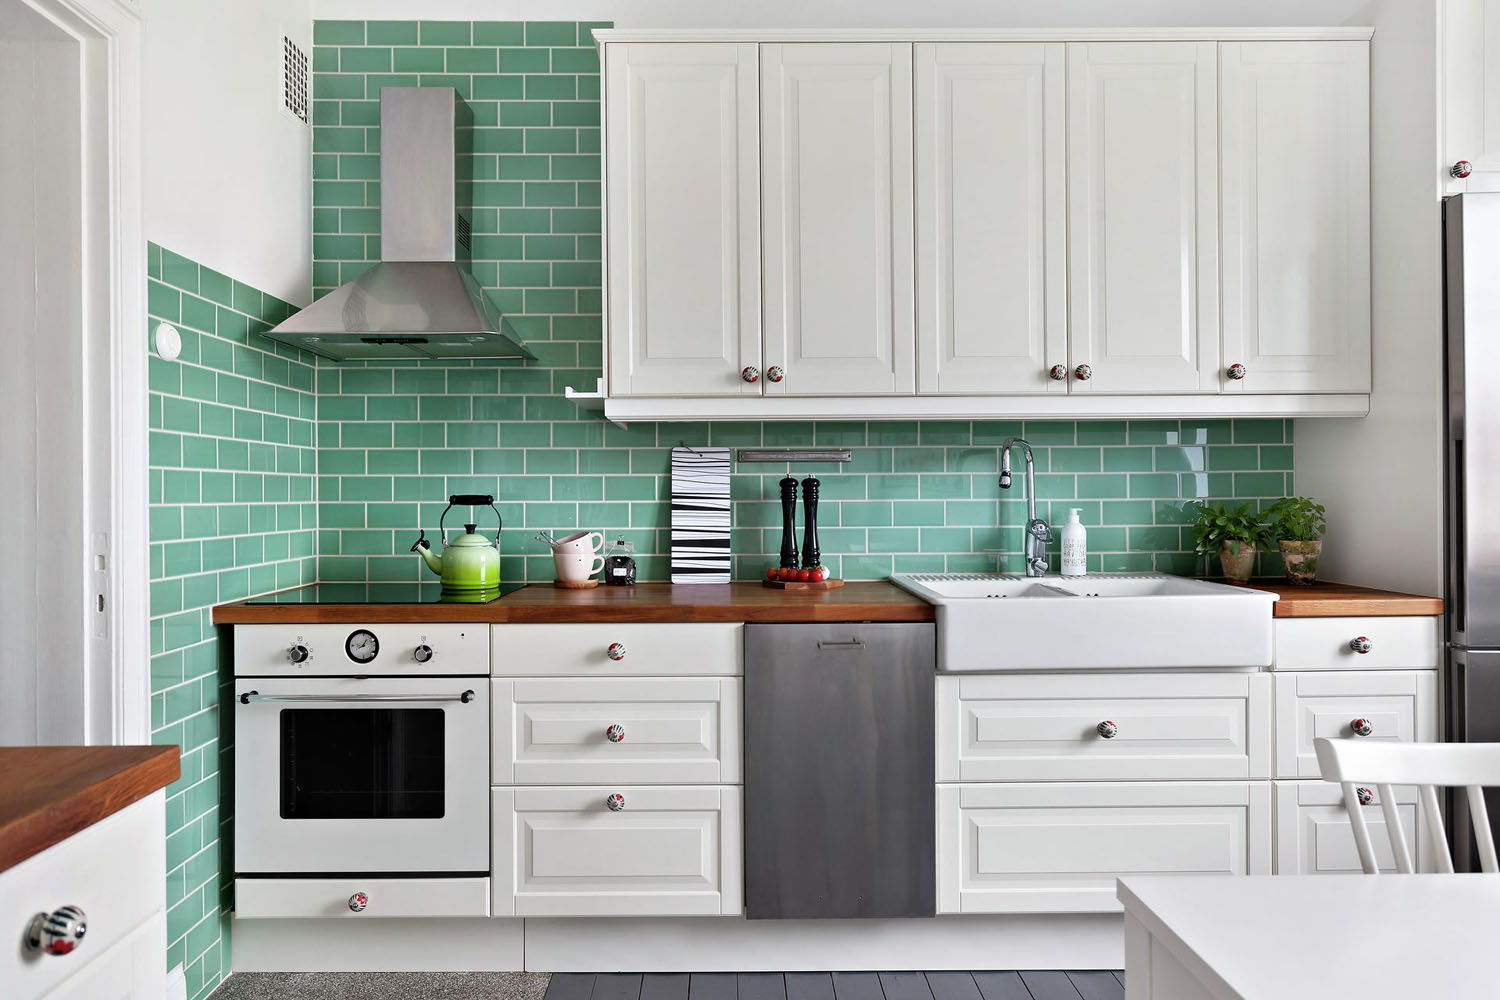 White IKEA Kitchen with Green Tiles